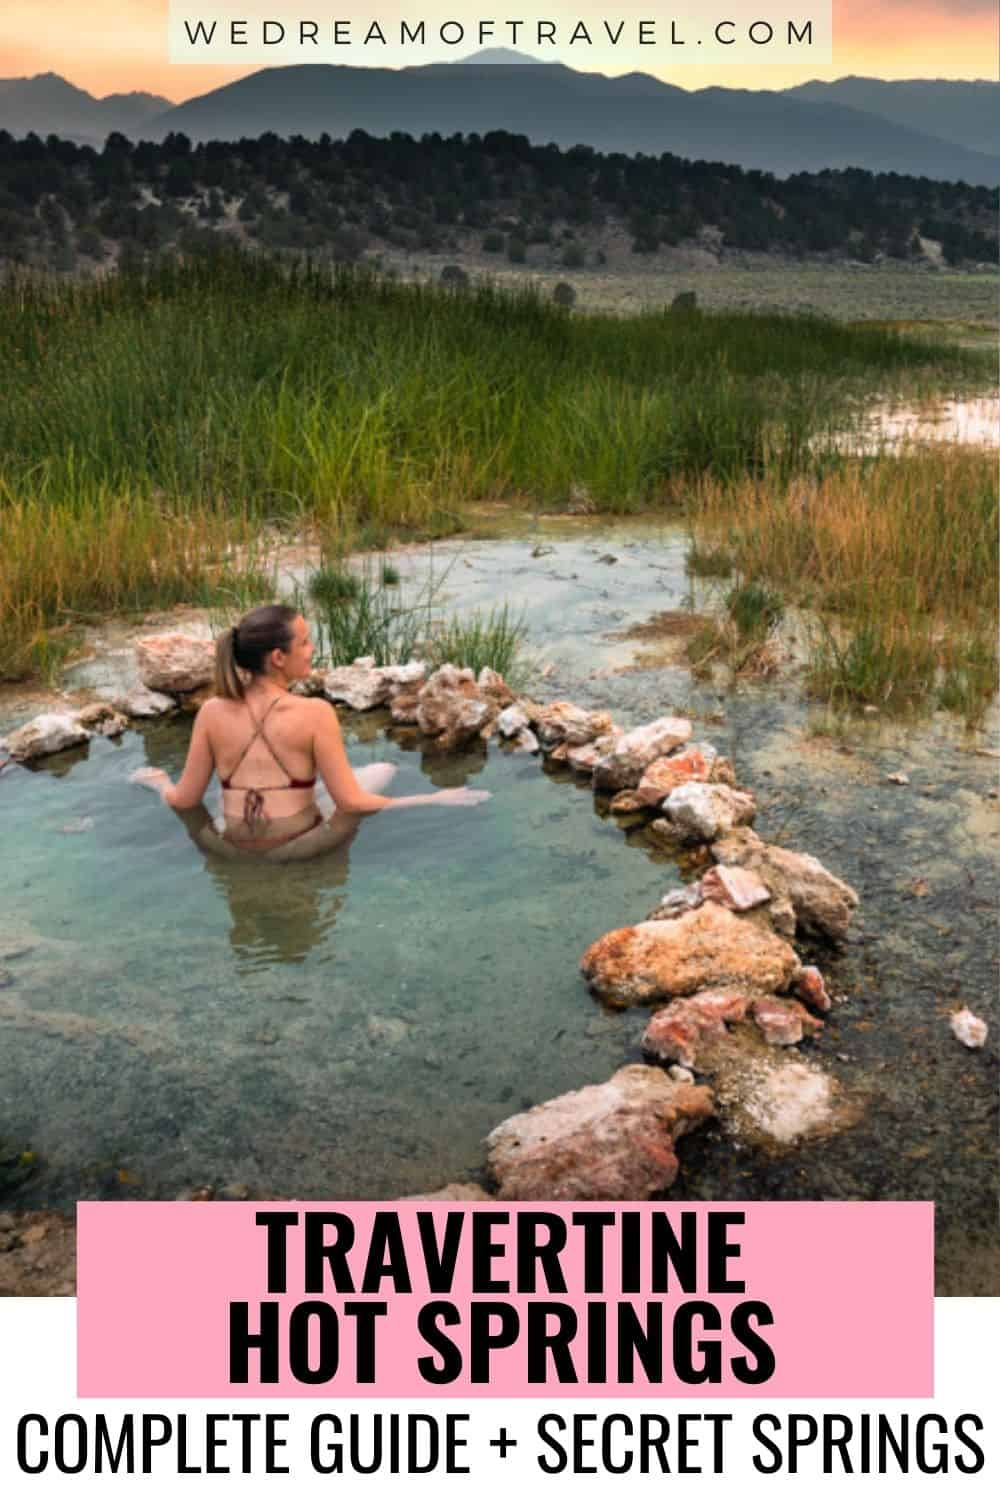 Soak in naturally heated mineral water at Travertine Hot Springs while you take in the views of the Sierra Mountains. Find out everything you need to visit these incredible hot springs, as well as a detailed guide to secret hot springs nearby!